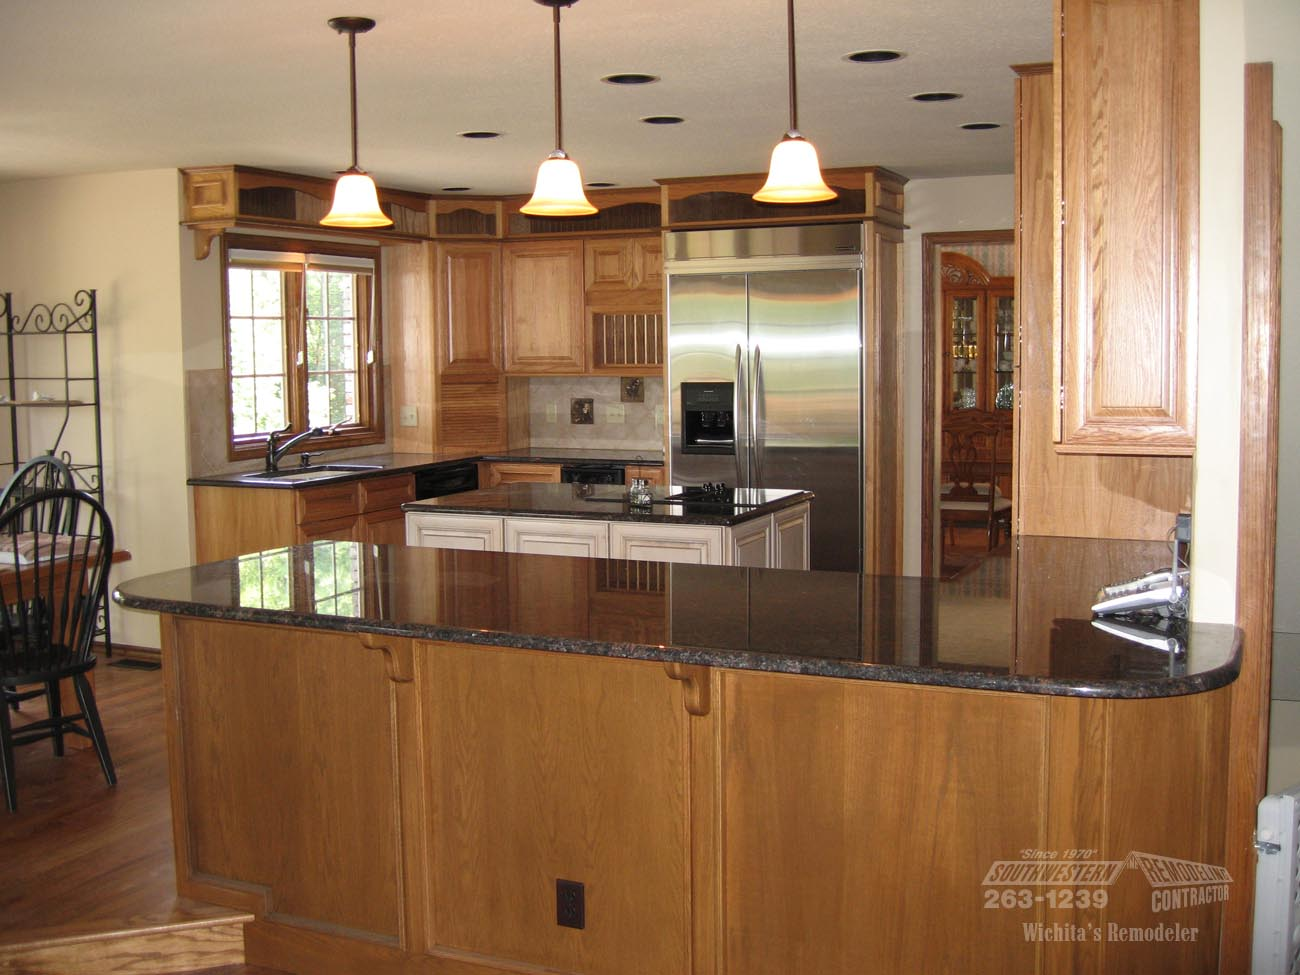 Southwestern Remodeling Kitchen Remodeling Wichita - Kitchen remodel wichita ks